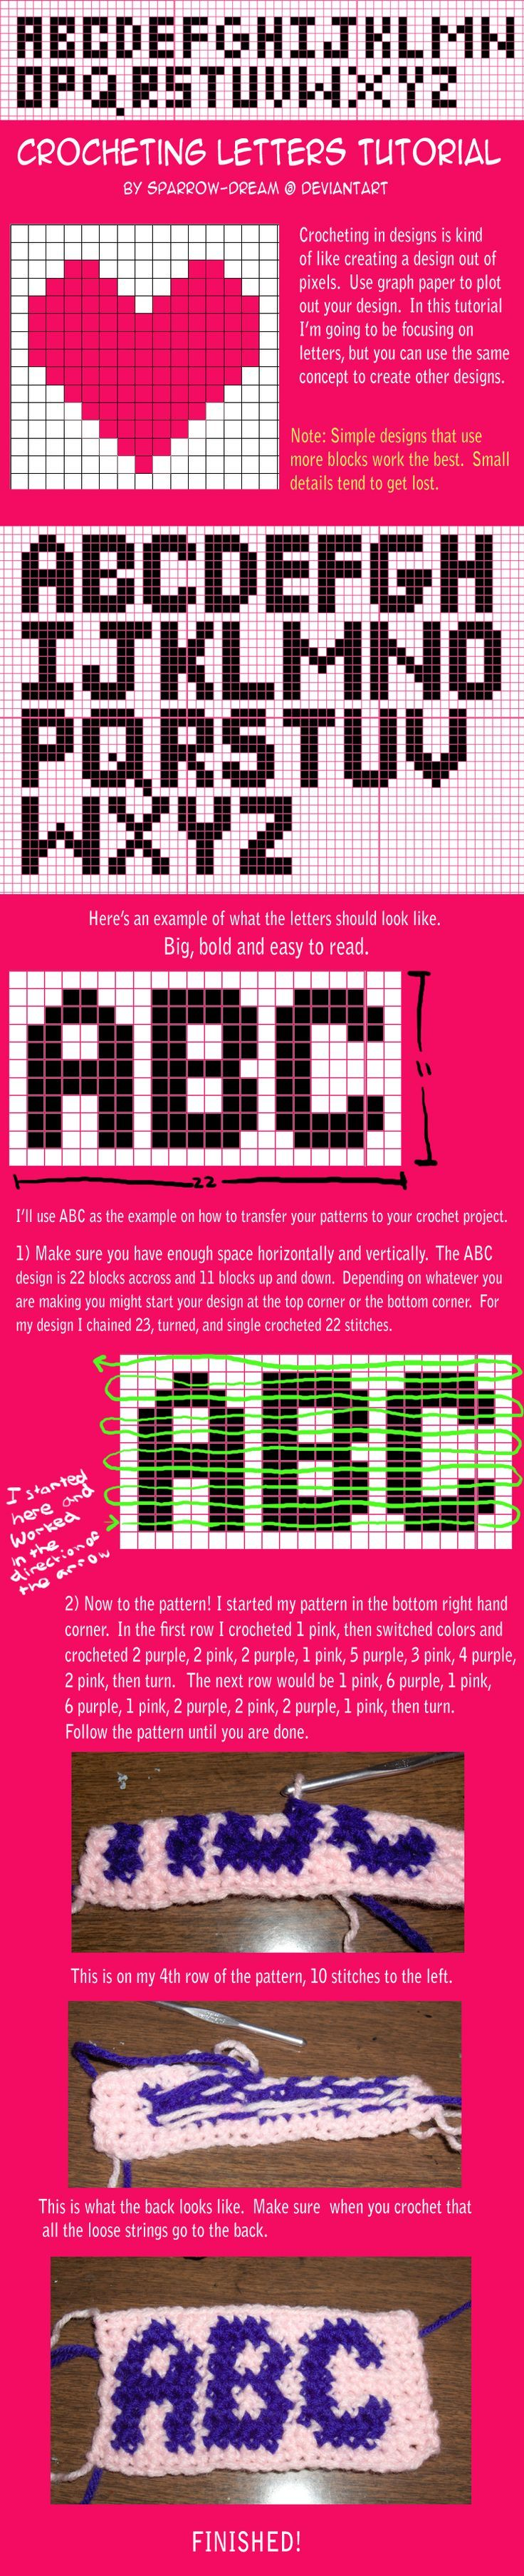 Crocheting Letters Tutorial : More like this: crochet letters , block patterns and letters .